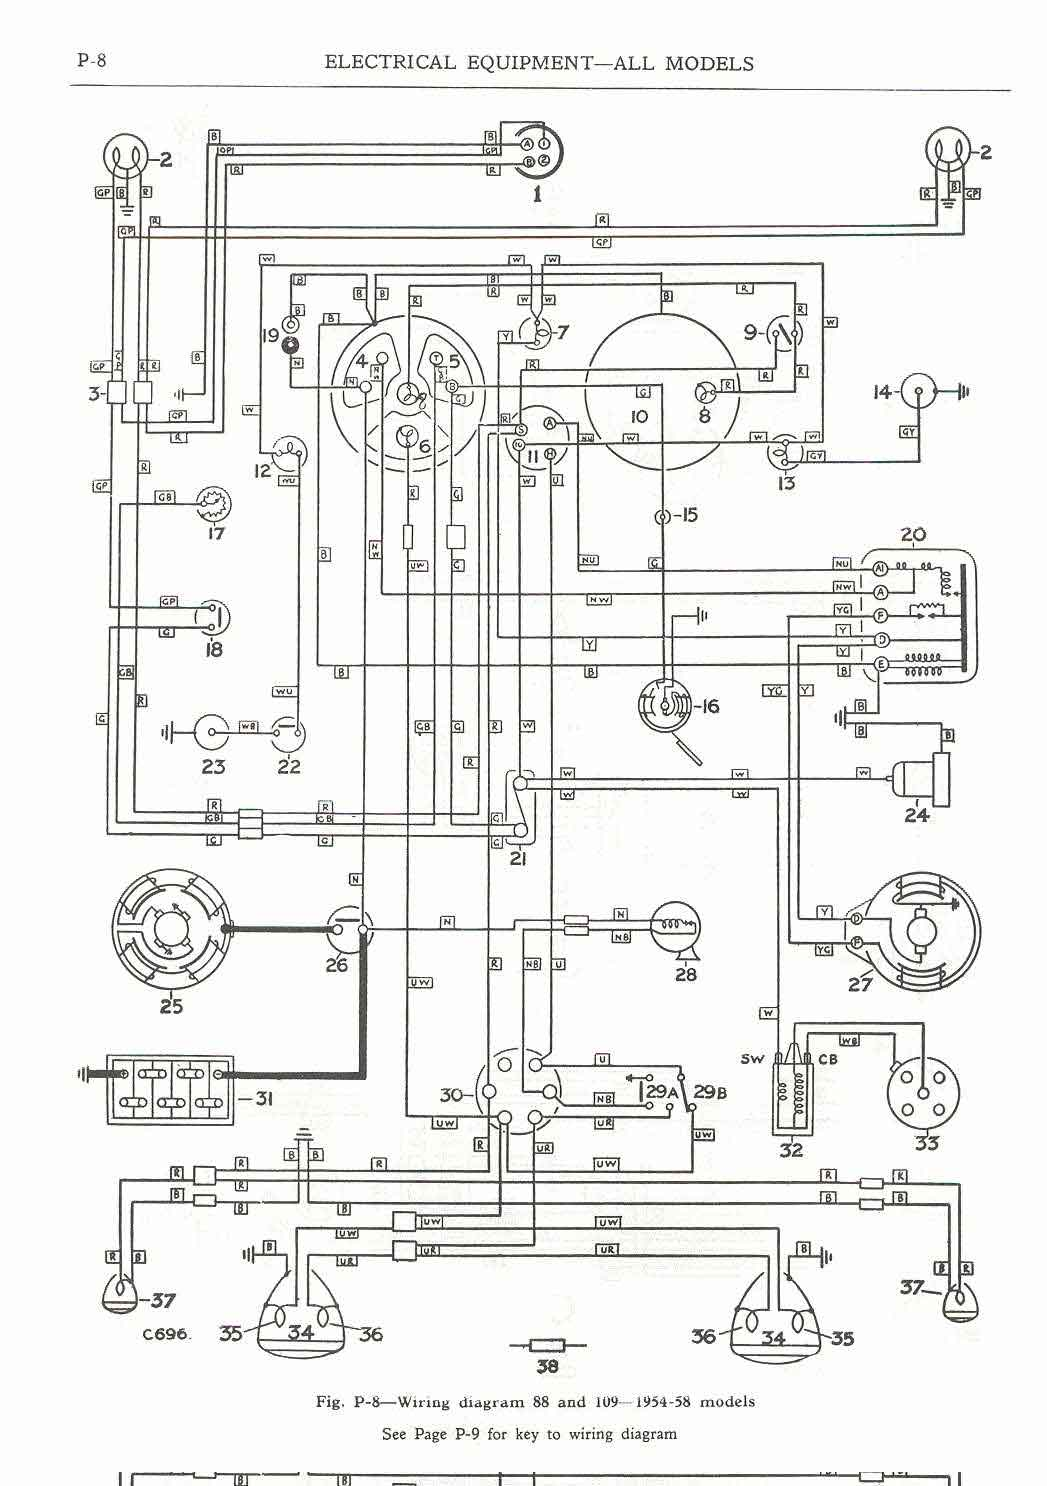 land rover faq - repair & maintenance - series ... land rover 109 v8 wiring diagram land rover defender v8 wiring diagram